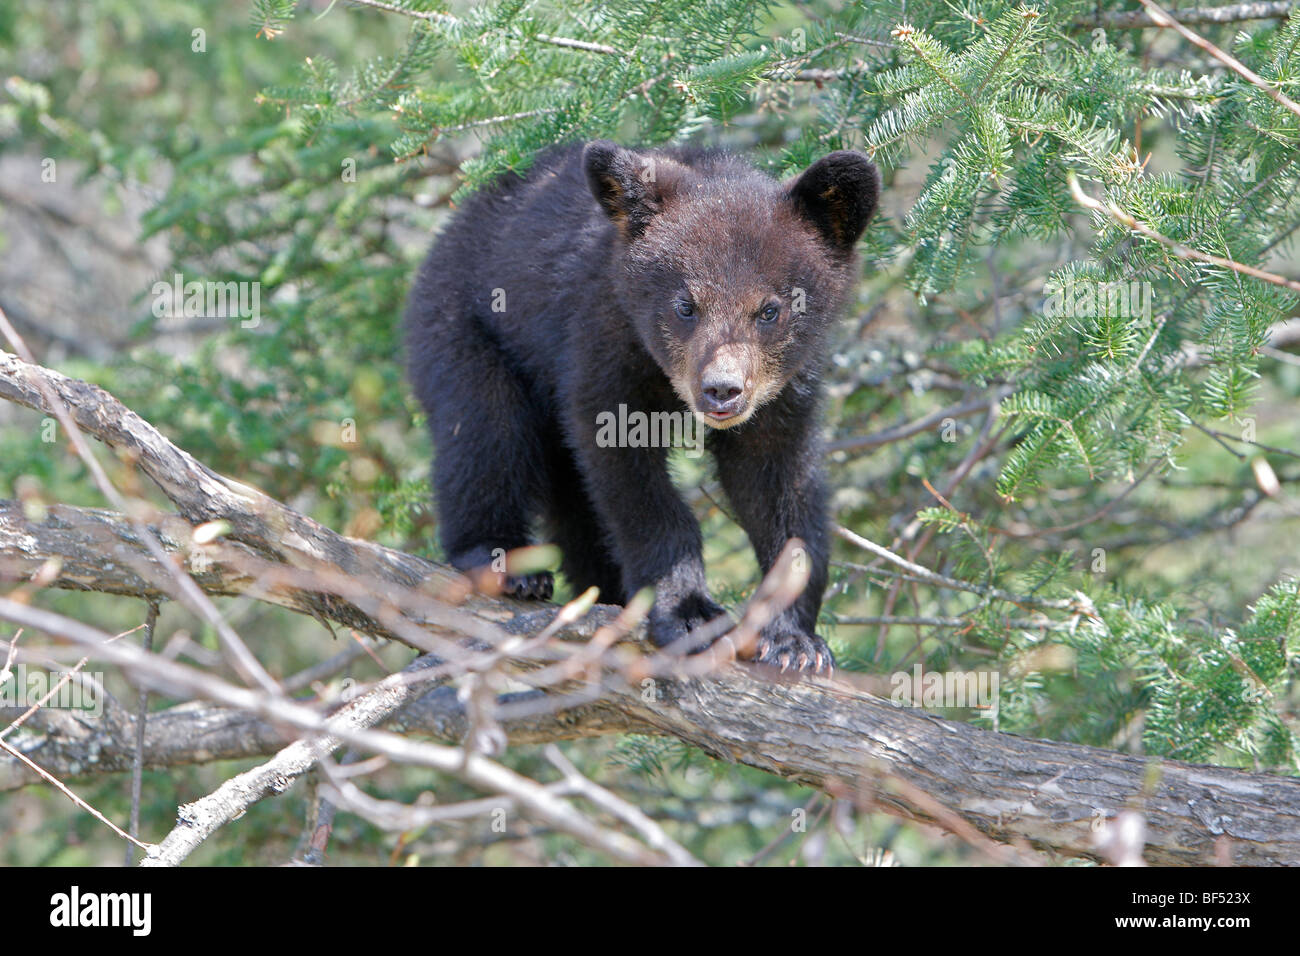 American Black Bear (Ursus americanus). Spring cub (4 months old) secure in a tree. - Stock Image